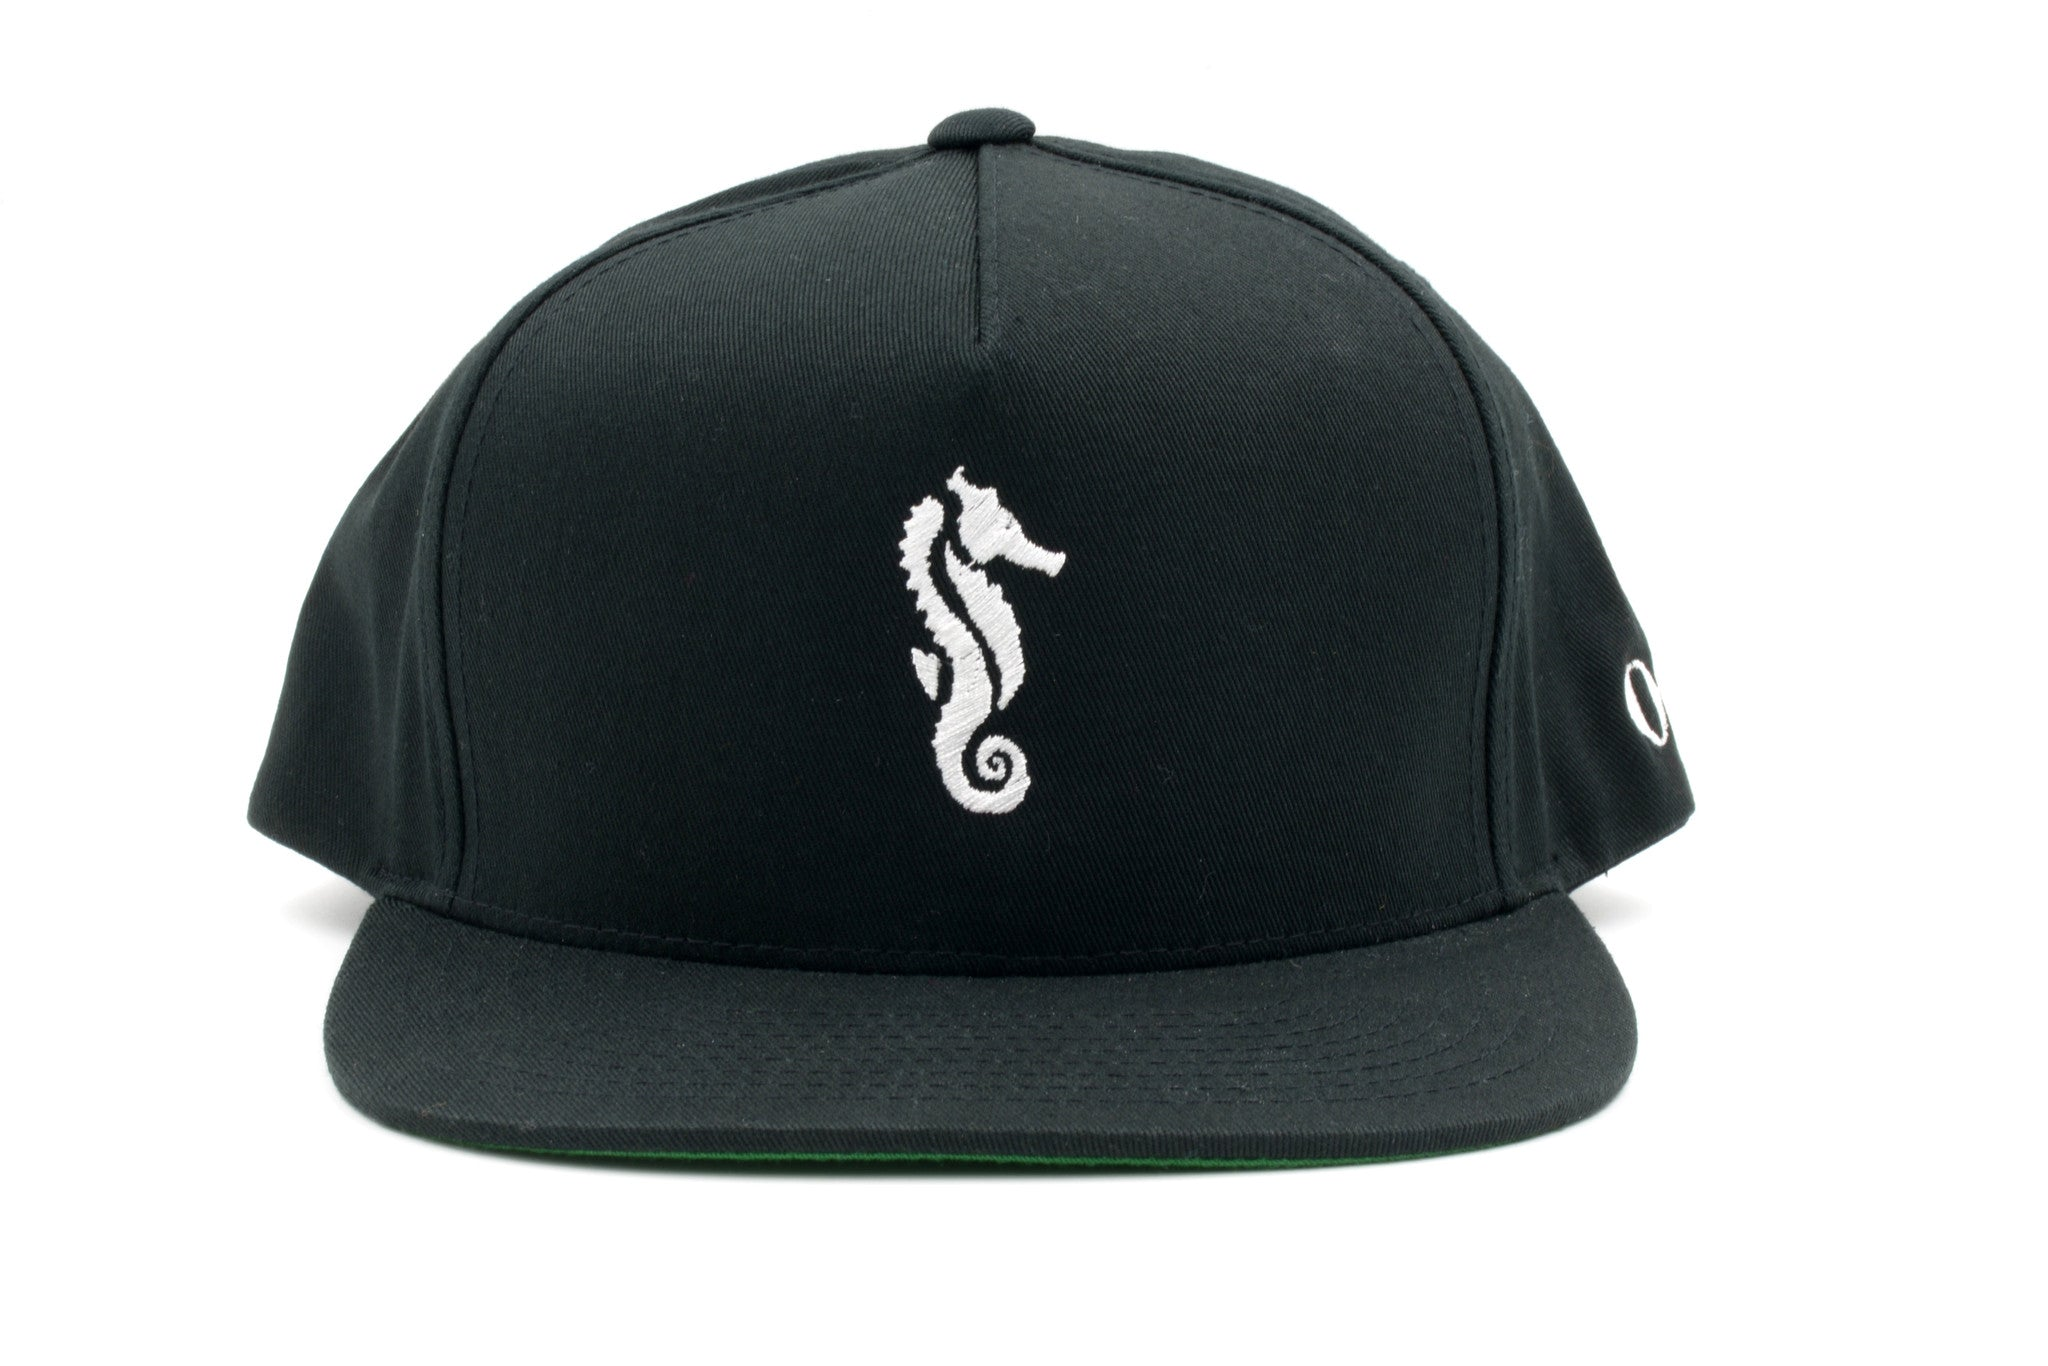 SEAHORSE HAT STYLE 2